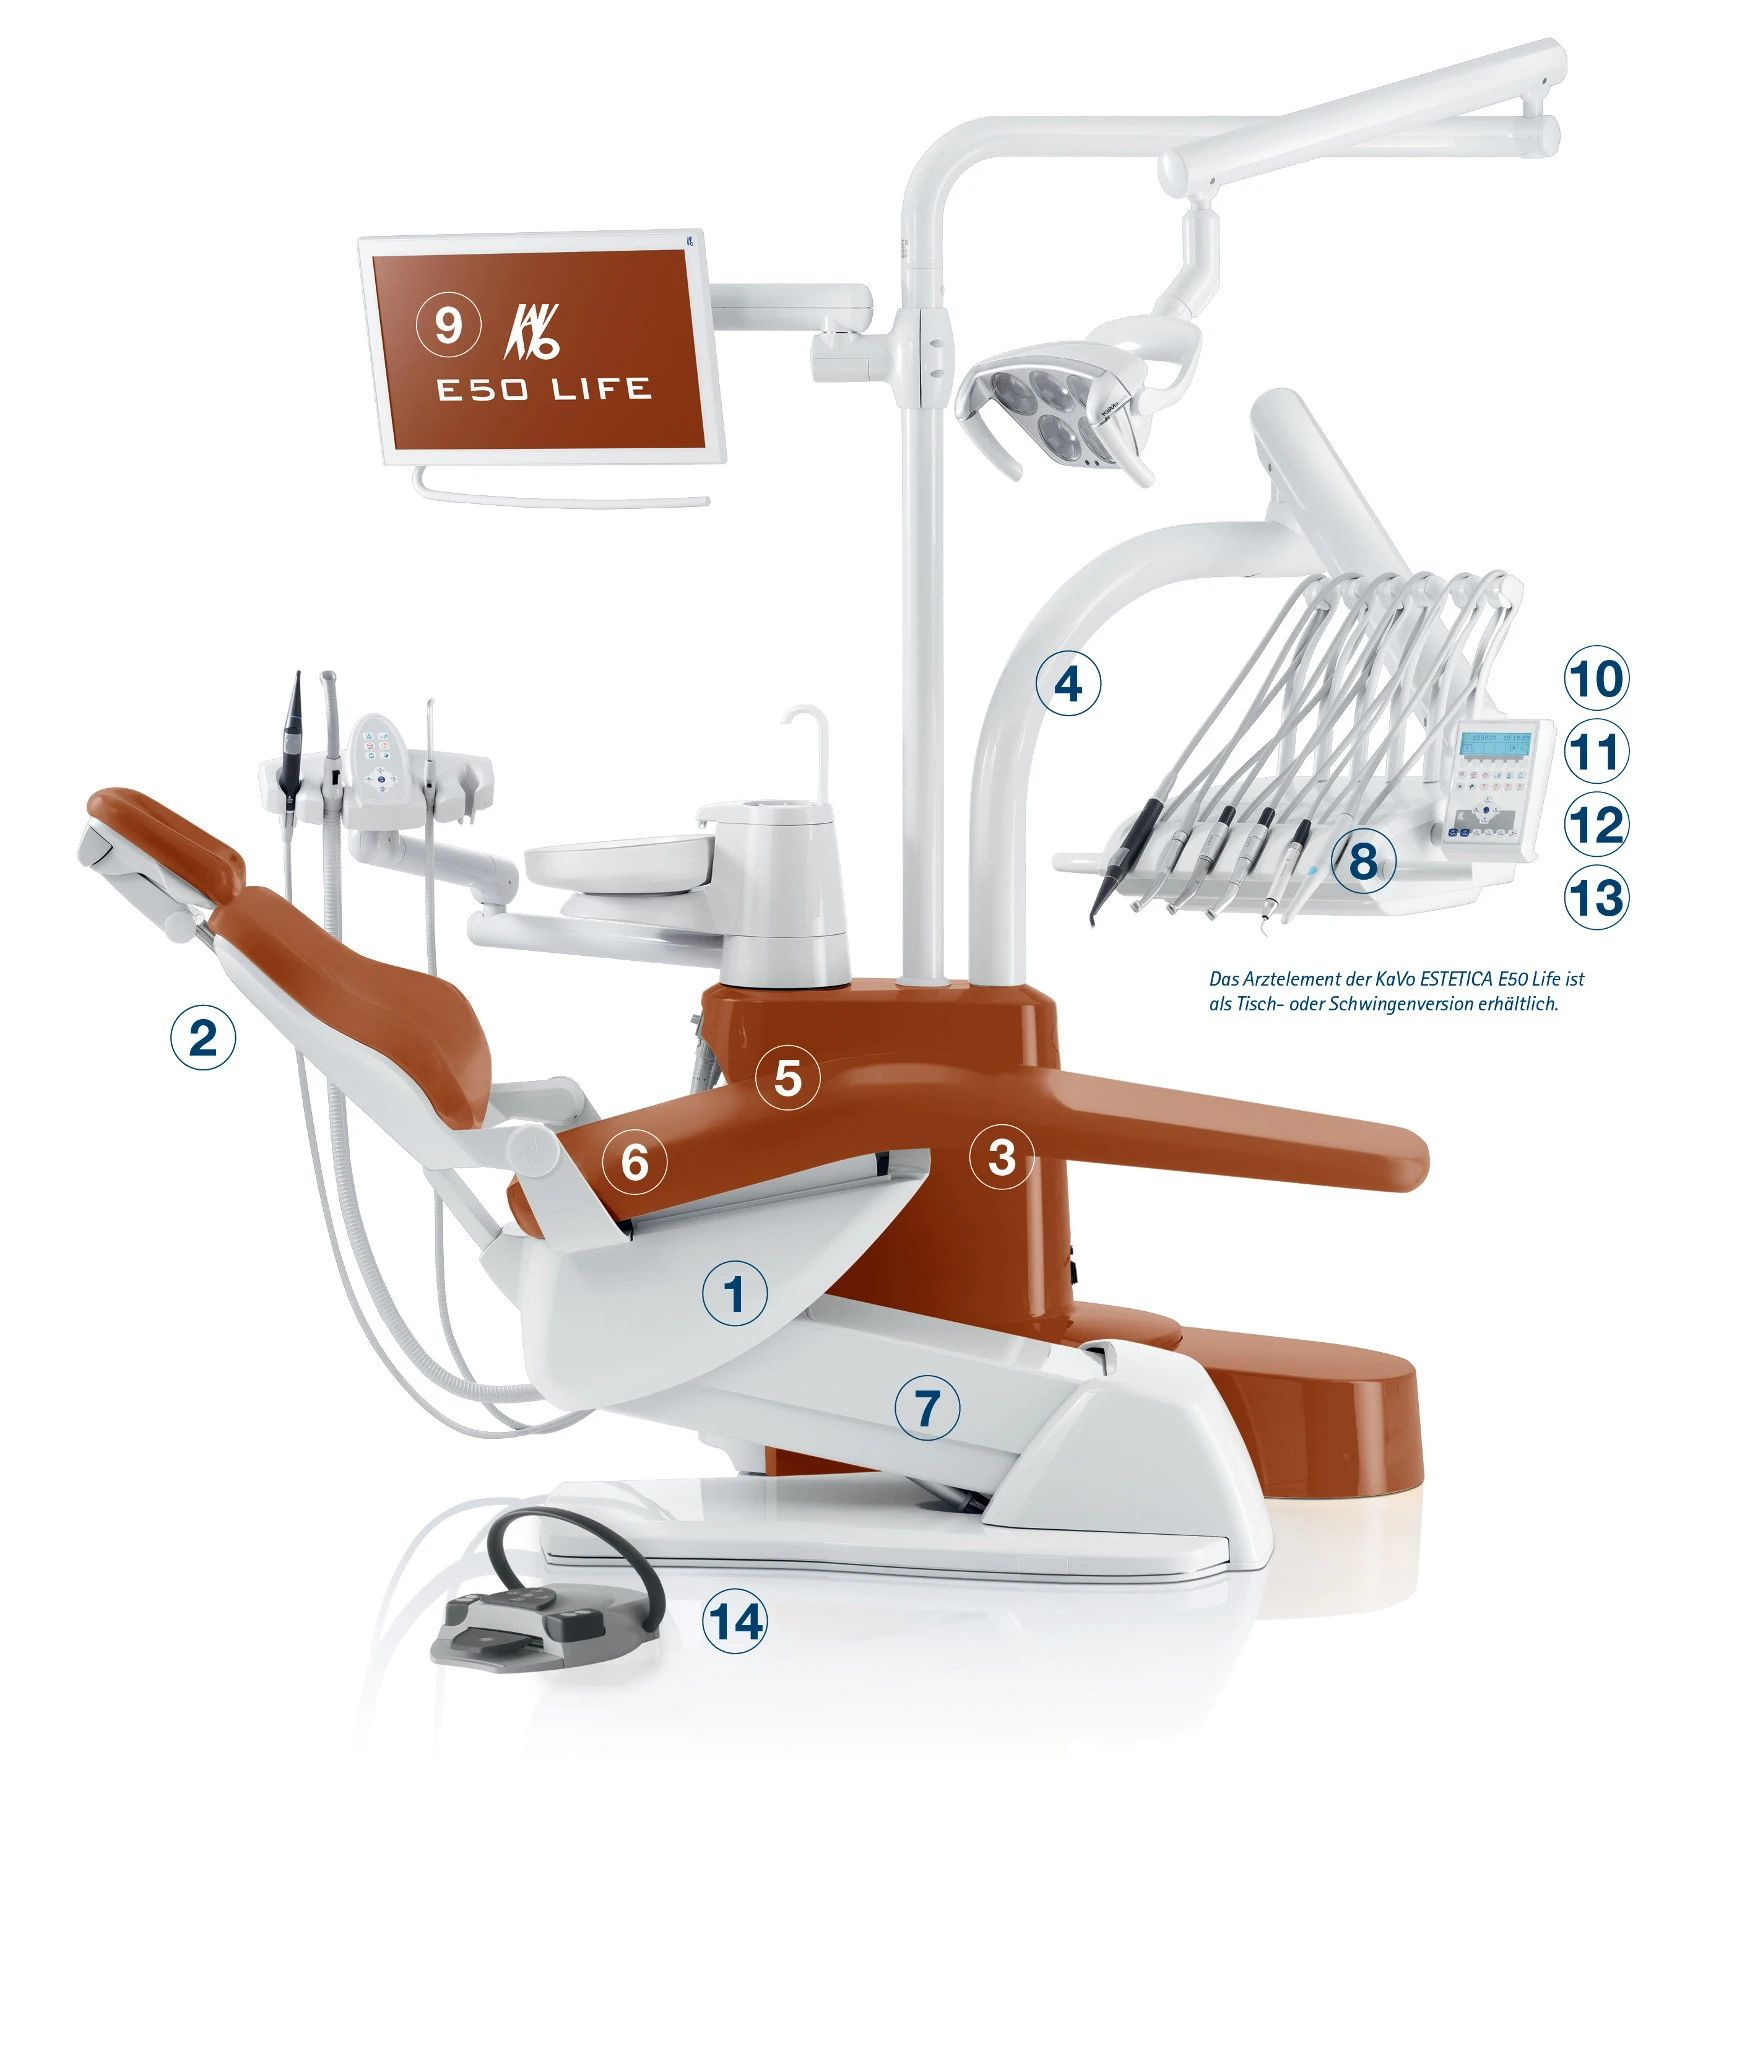 Dental Chairs Find your KaVo Dental Chair